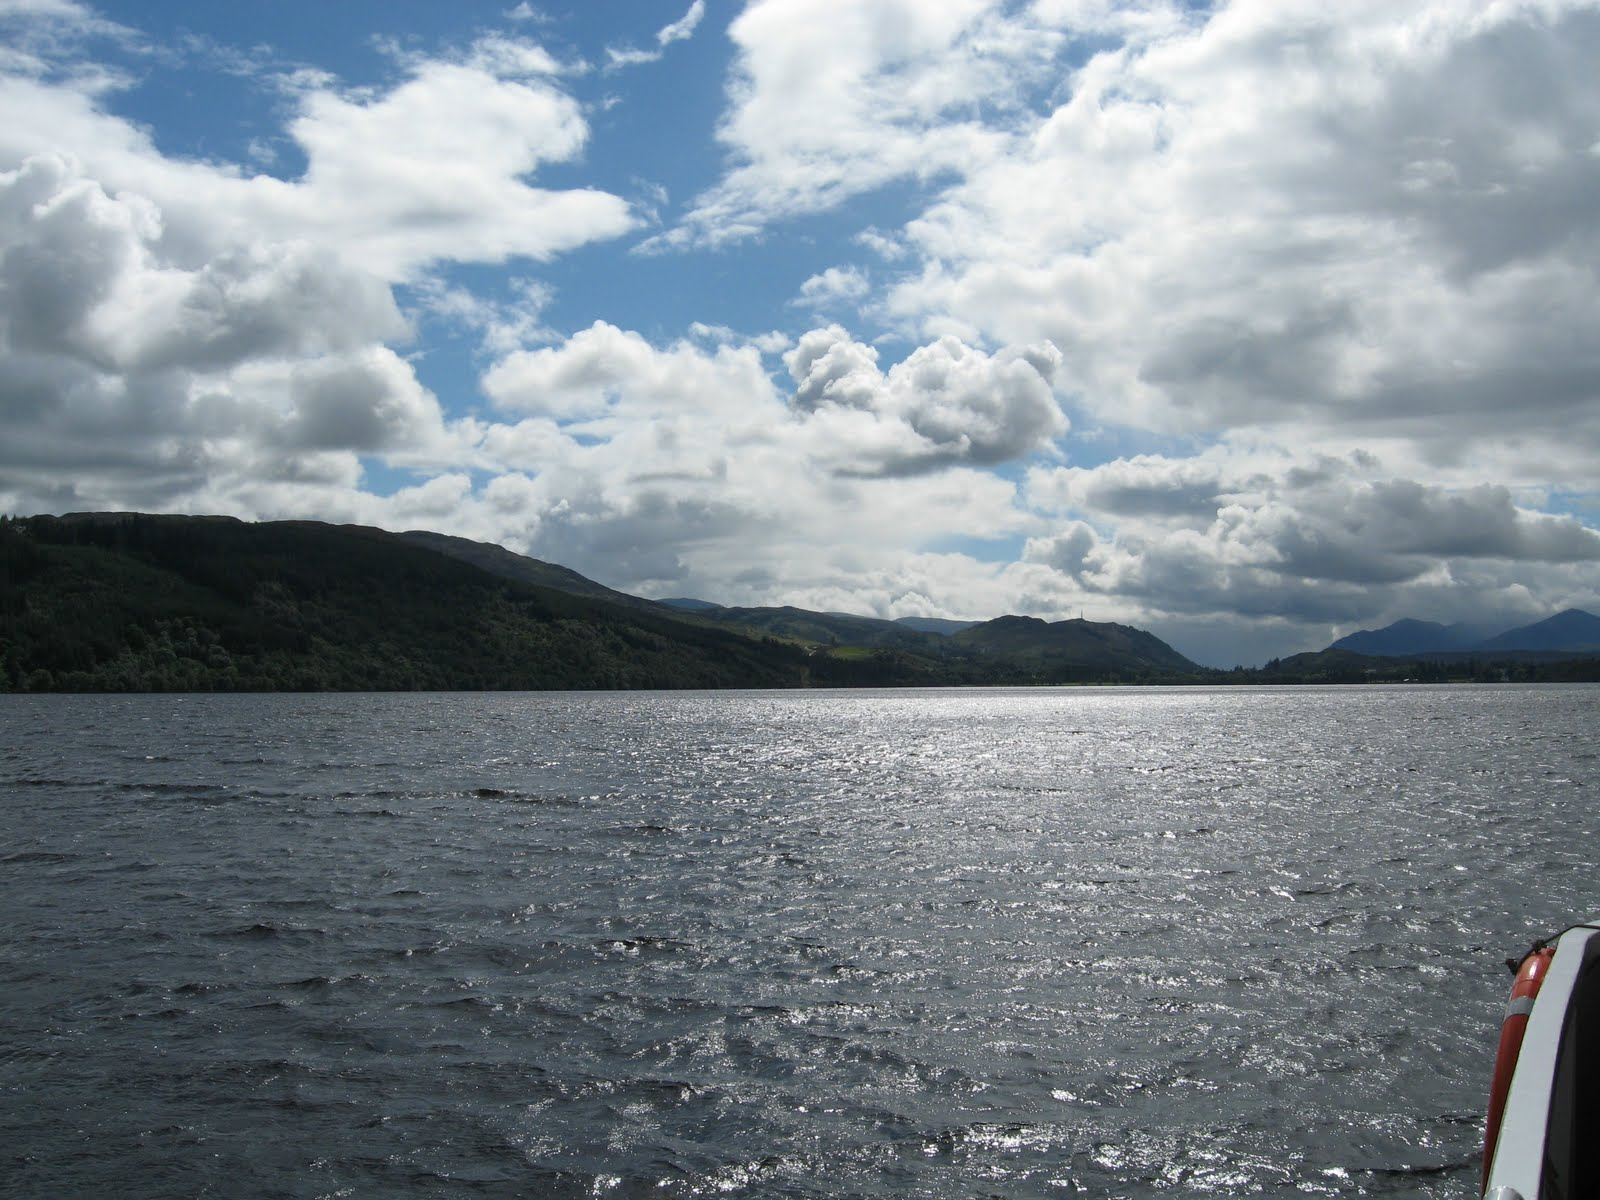 http://4.bp.blogspot.com/_MXaWDgypCas/THHzN6RZ_SI/AAAAAAAAB9Y/rHJF530kv-8/s1600/loch+ness+and+a+ripple+could+be+Nessie!.jpg